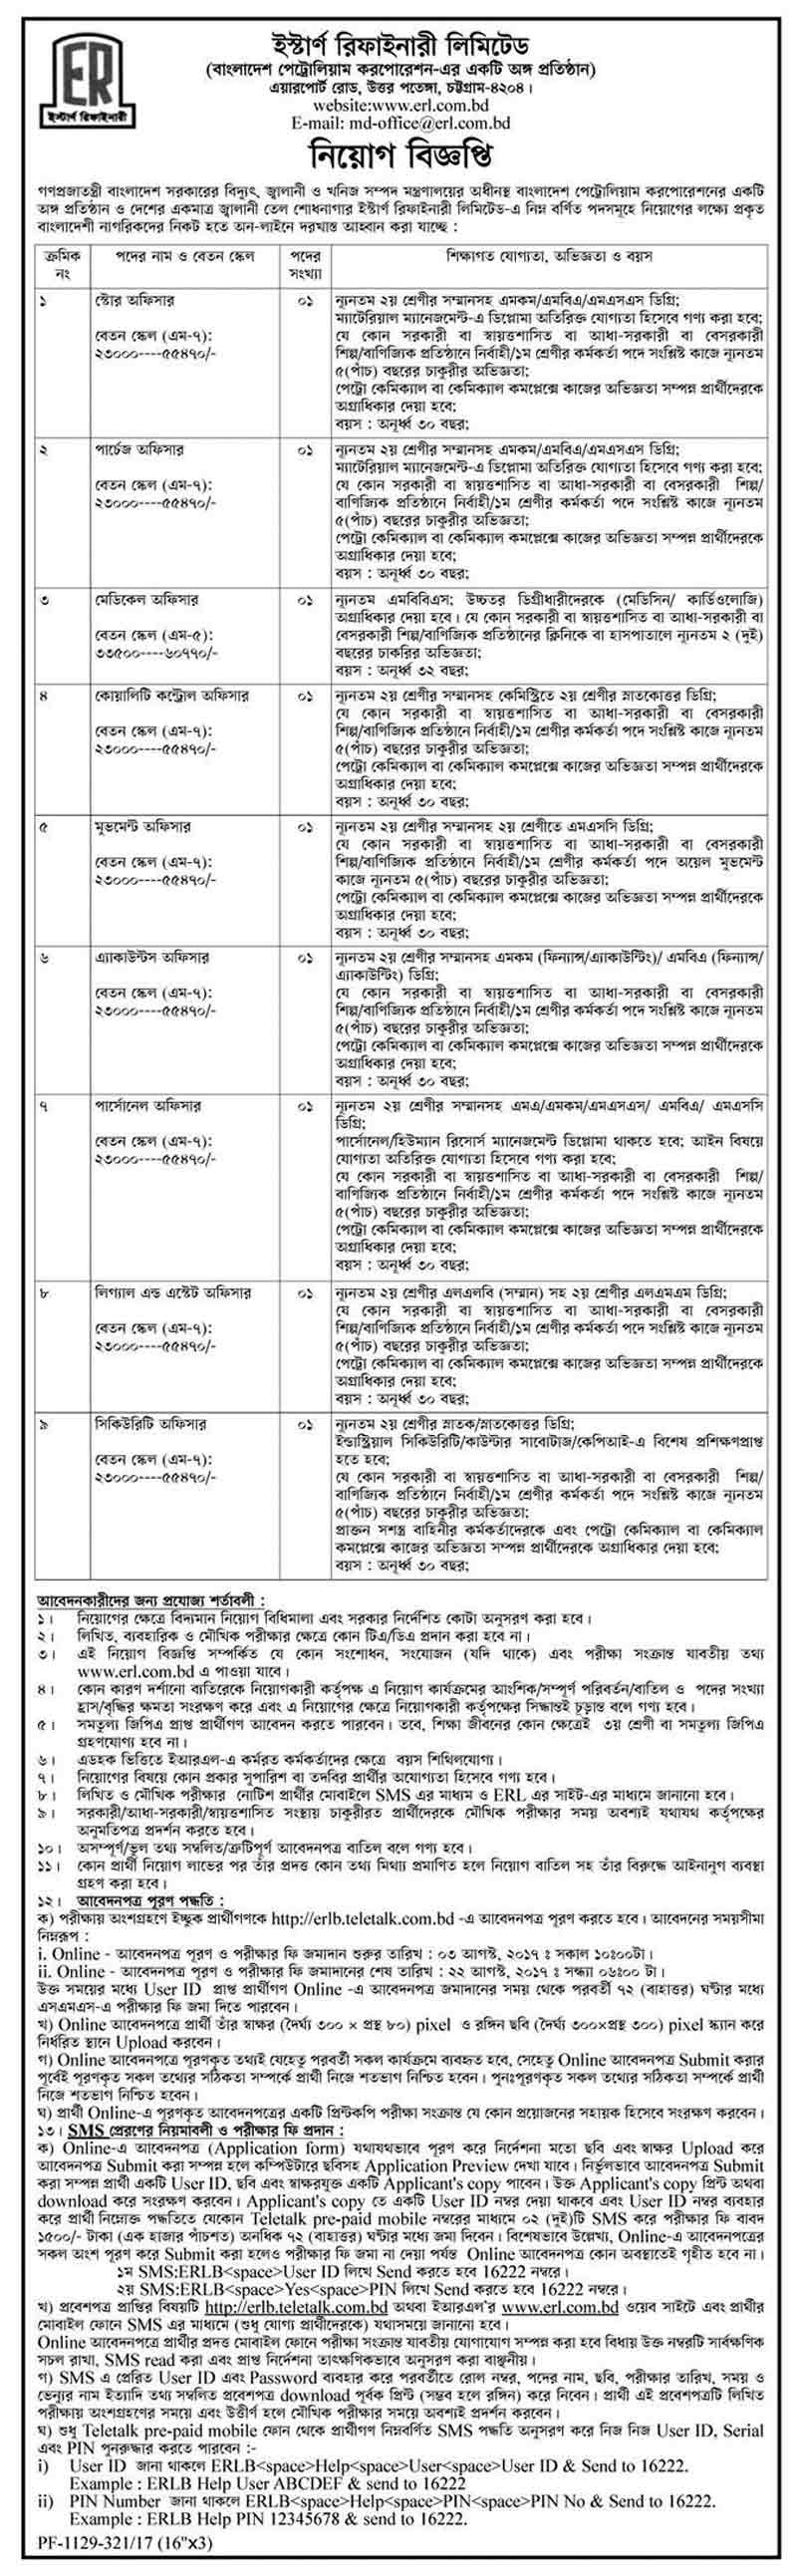 Bangladesh Petroleum Corporation Job Circular 2017